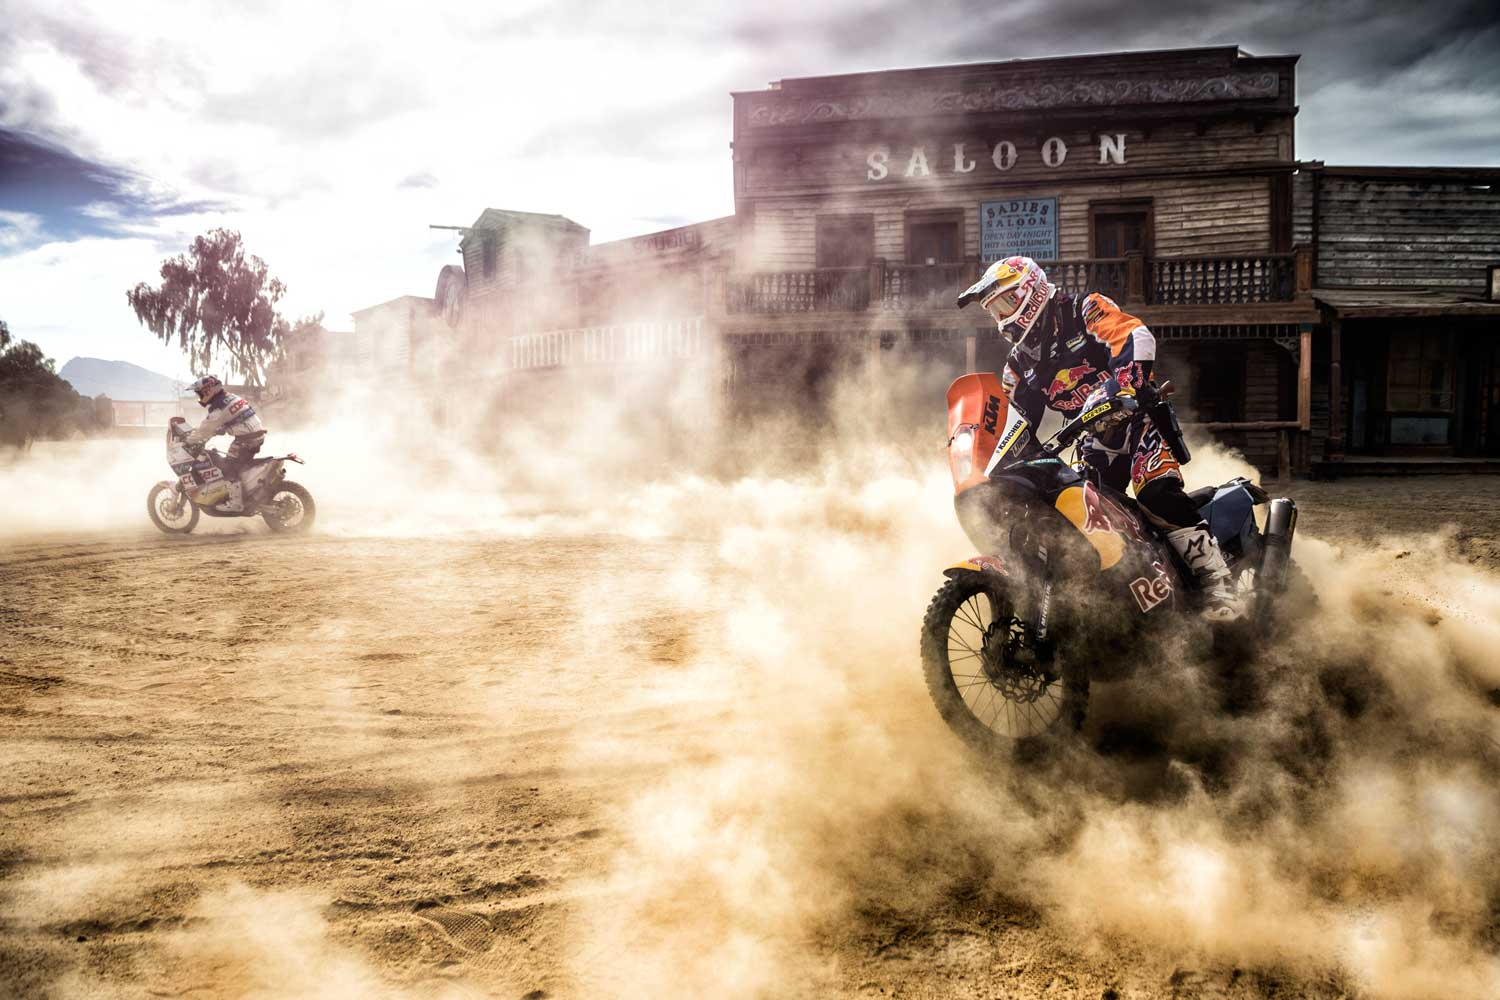 Francisco Chaleco Lopez and Ruben Faria take off in front of the saloon during an activation for Rally Dakar 2014.